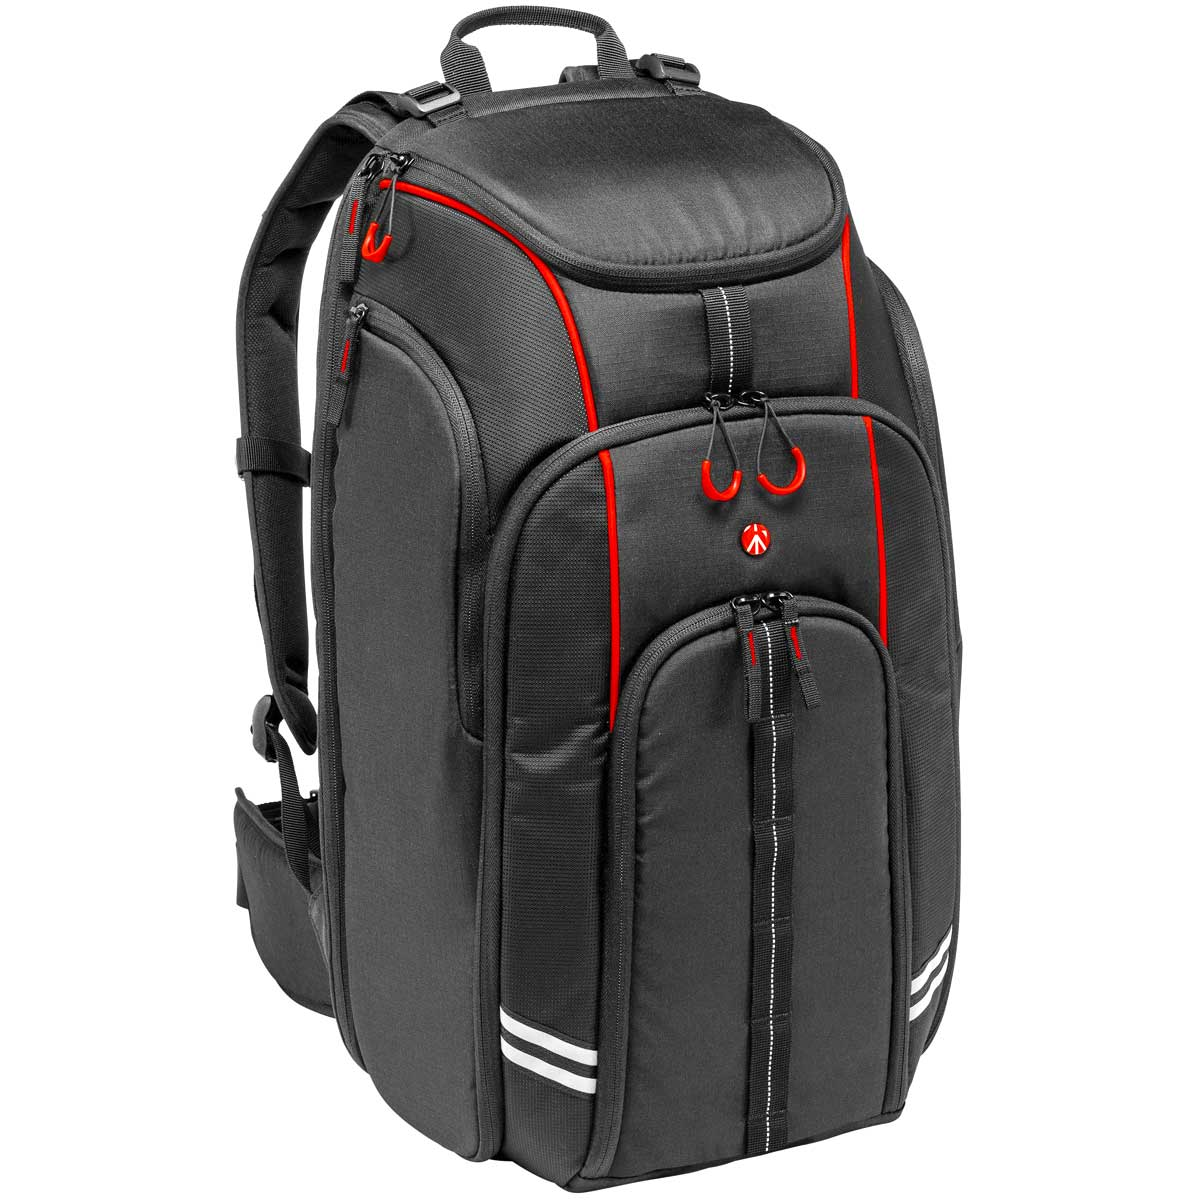 Mochila Manfrotto Aviator D1